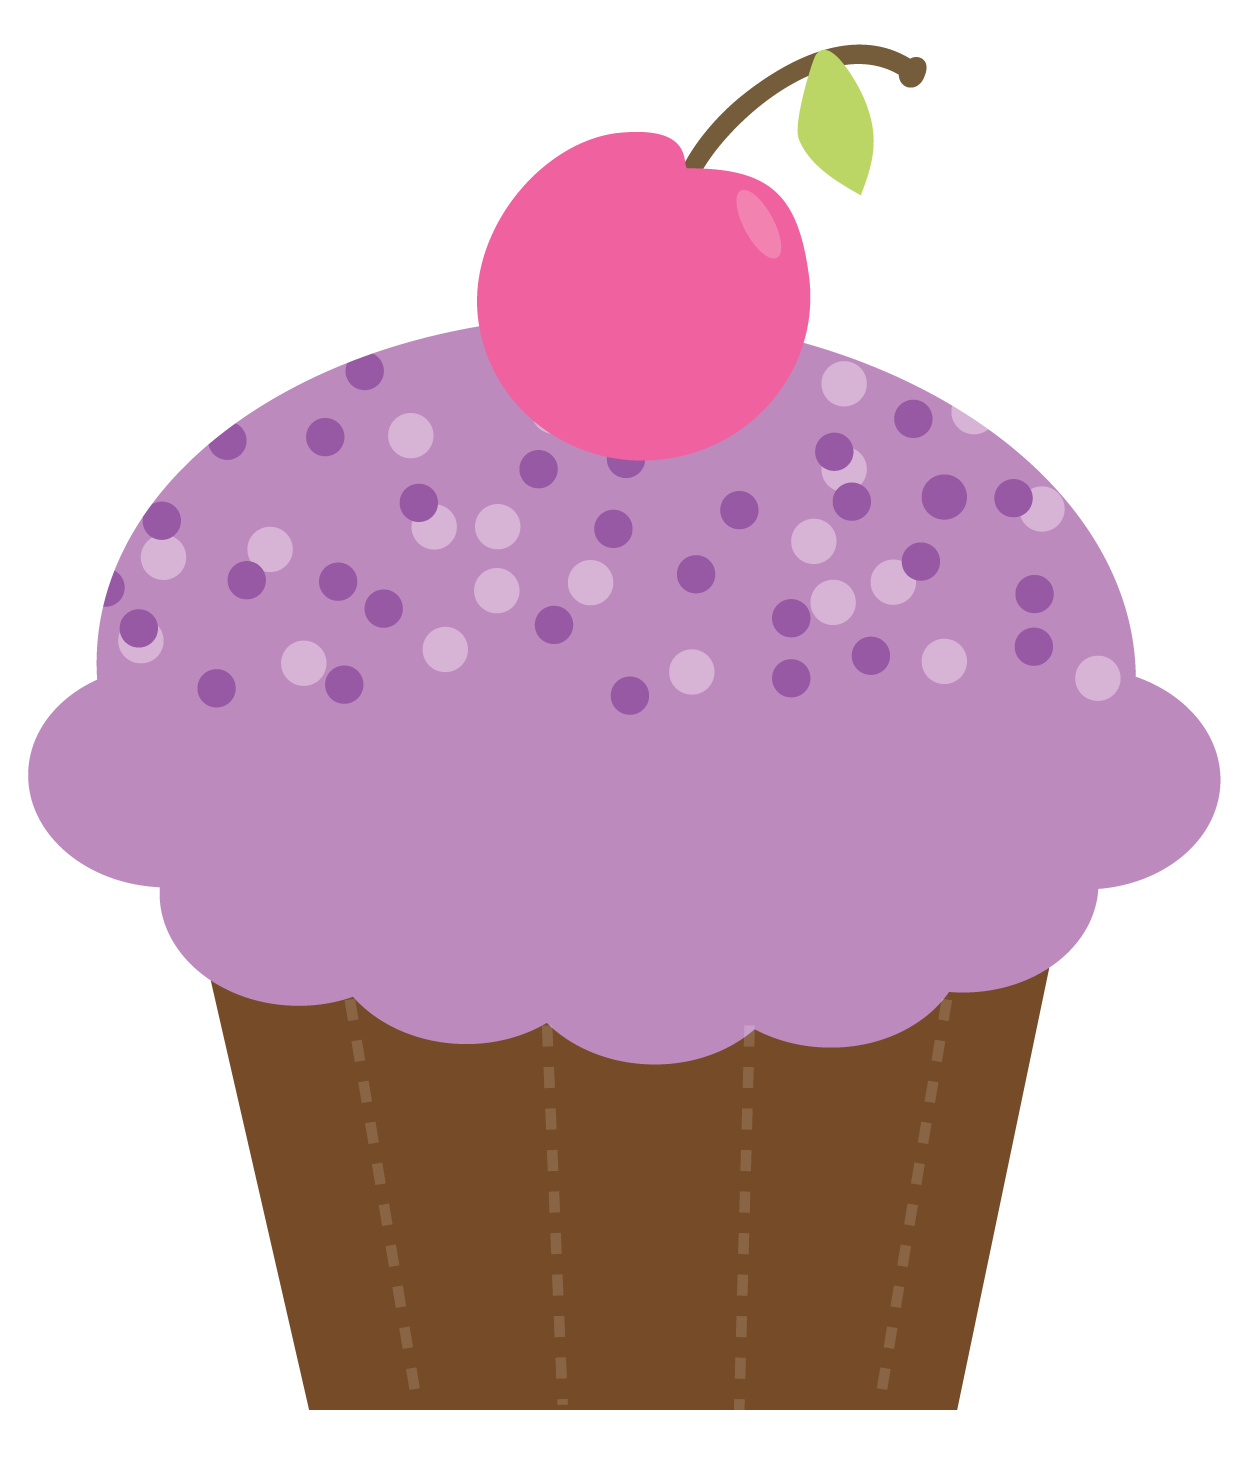 Muffins clipart border. Cupcakes